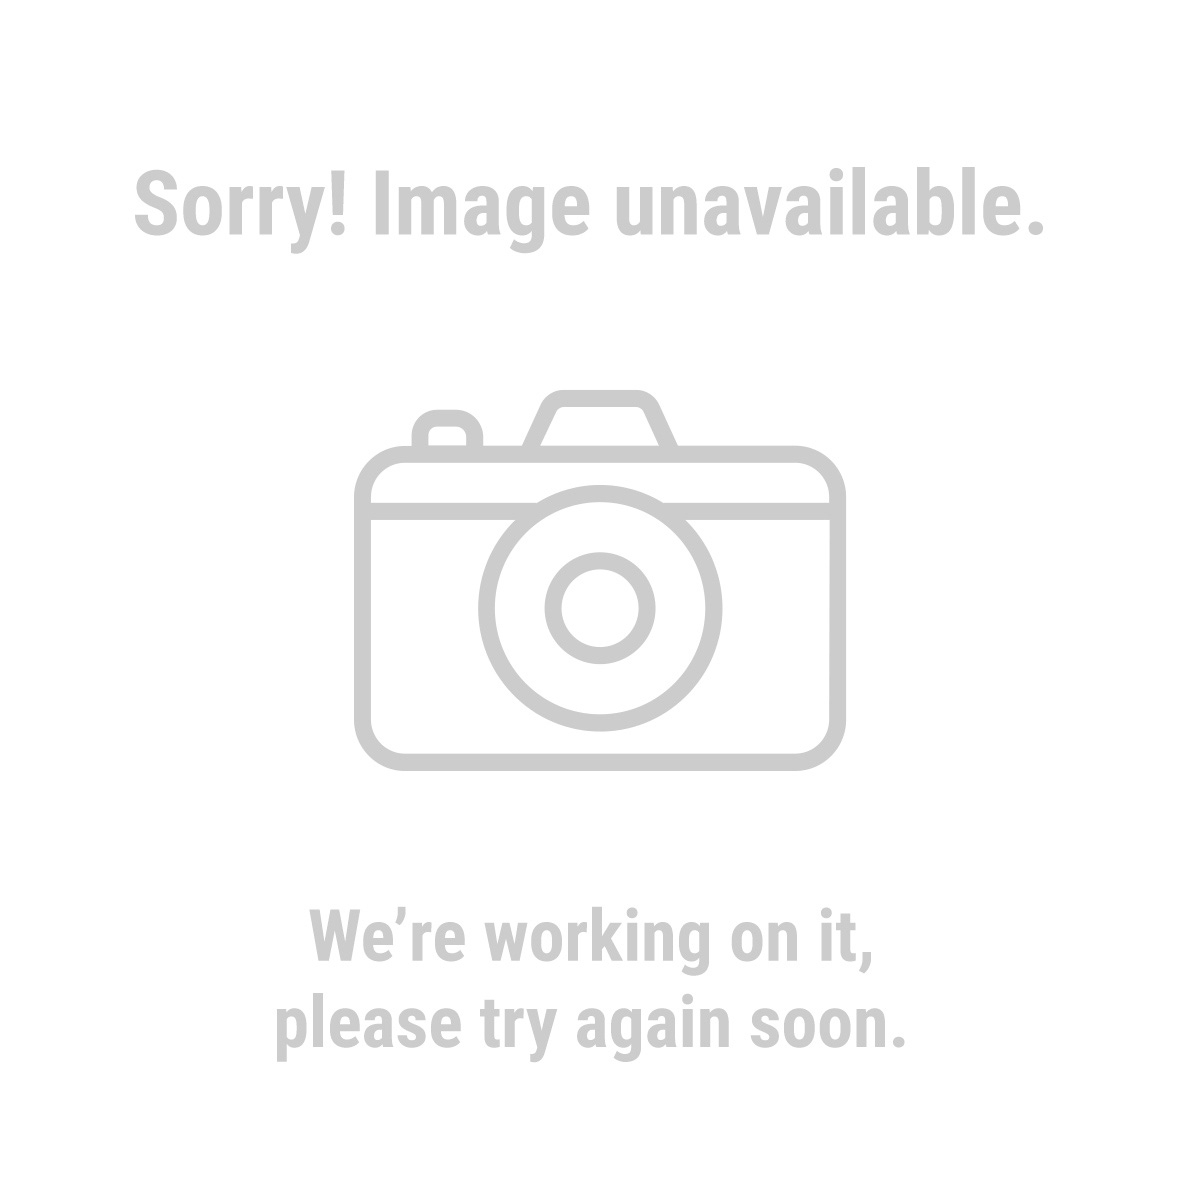 U.S. General® 69322 Magnetic Glove/Tissue Dispenser